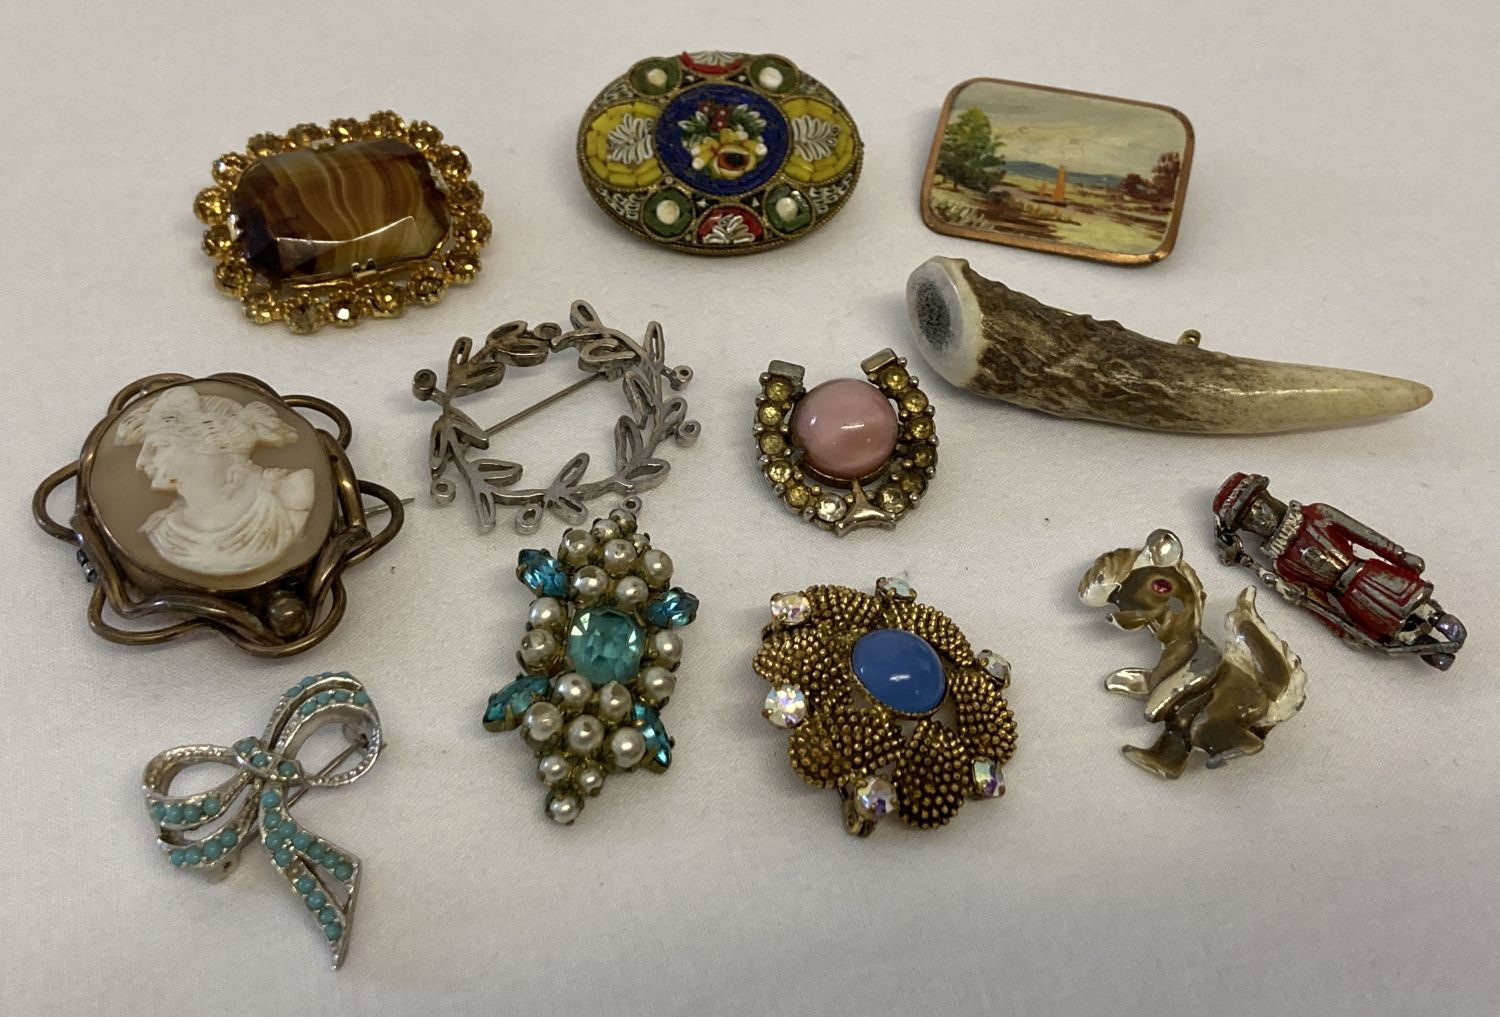 12 vintage brooches to include silver and stone set. Examples from Sphinx and Hollywood.